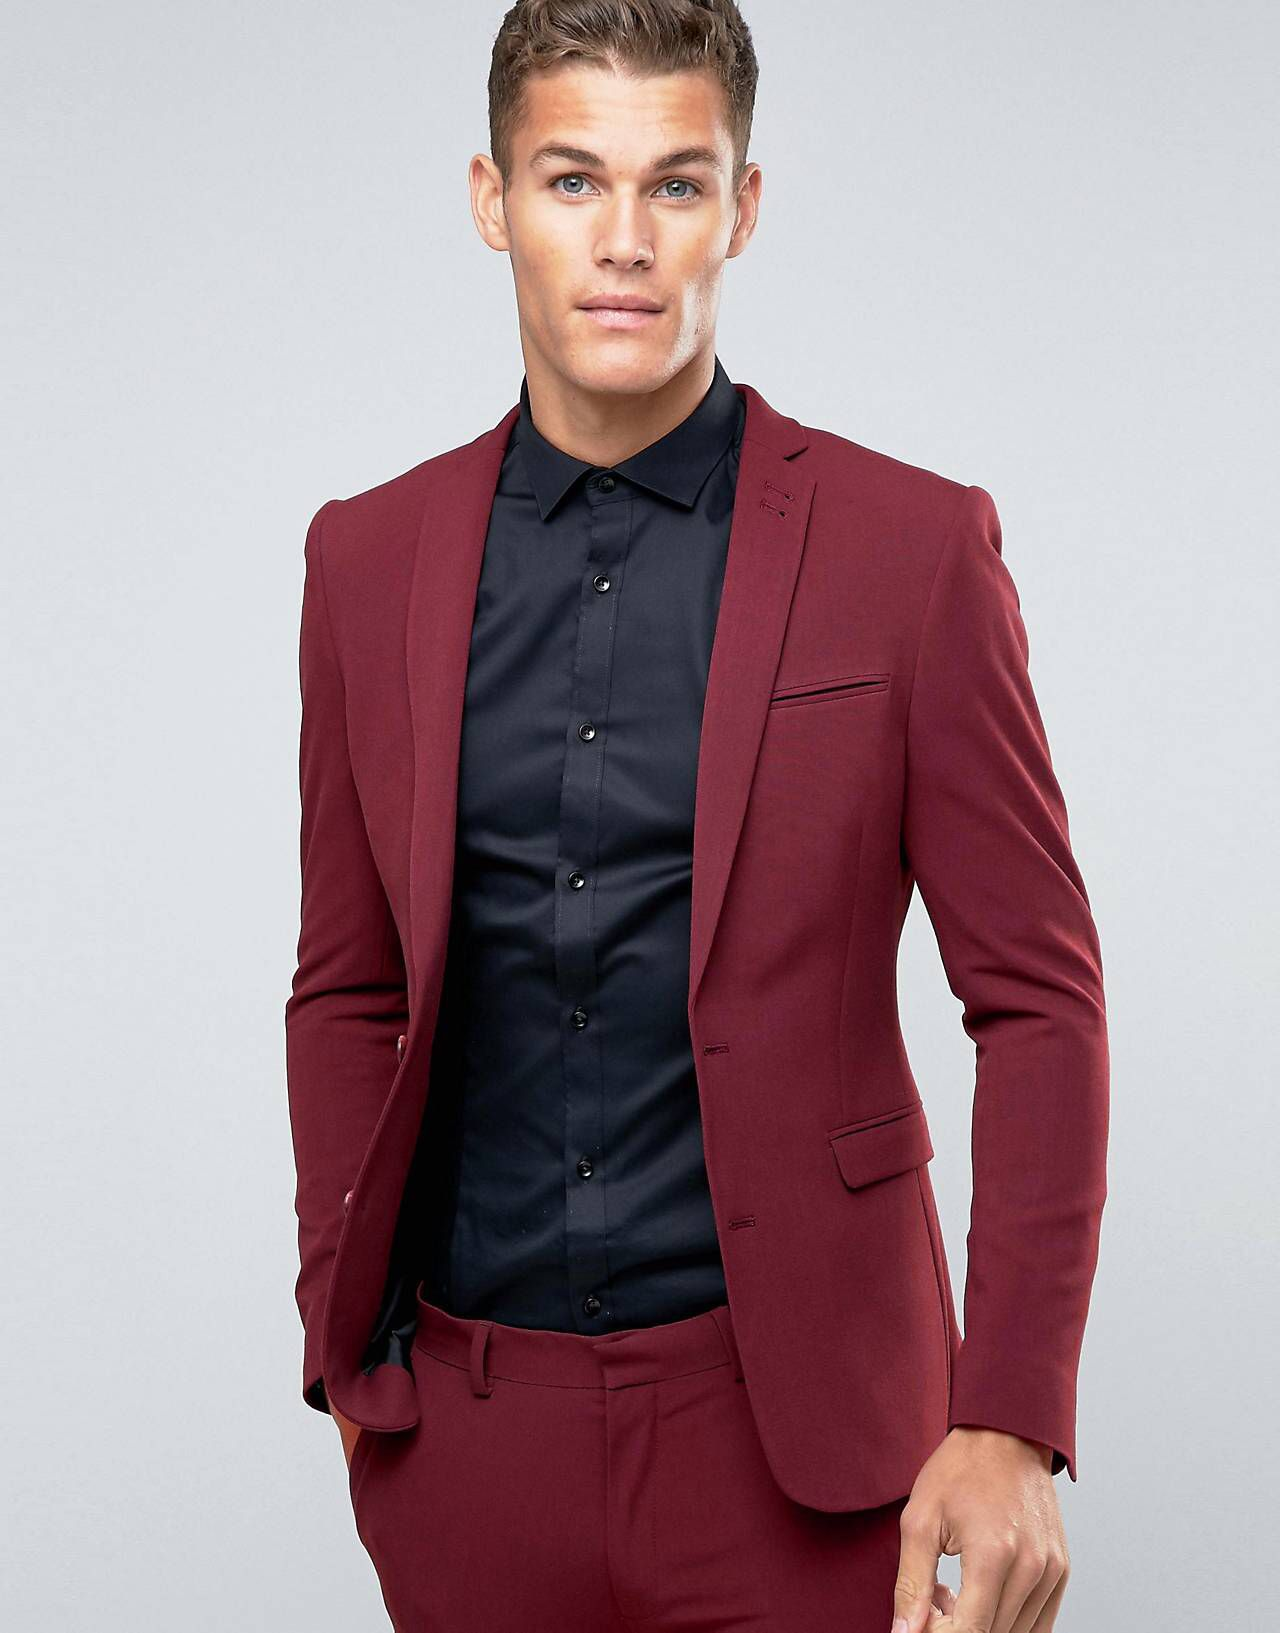 cowboy Competitors Indoors  LOVE this from ASOS!   Red blazer mens, Skinny suits, Mens skinny fit suits